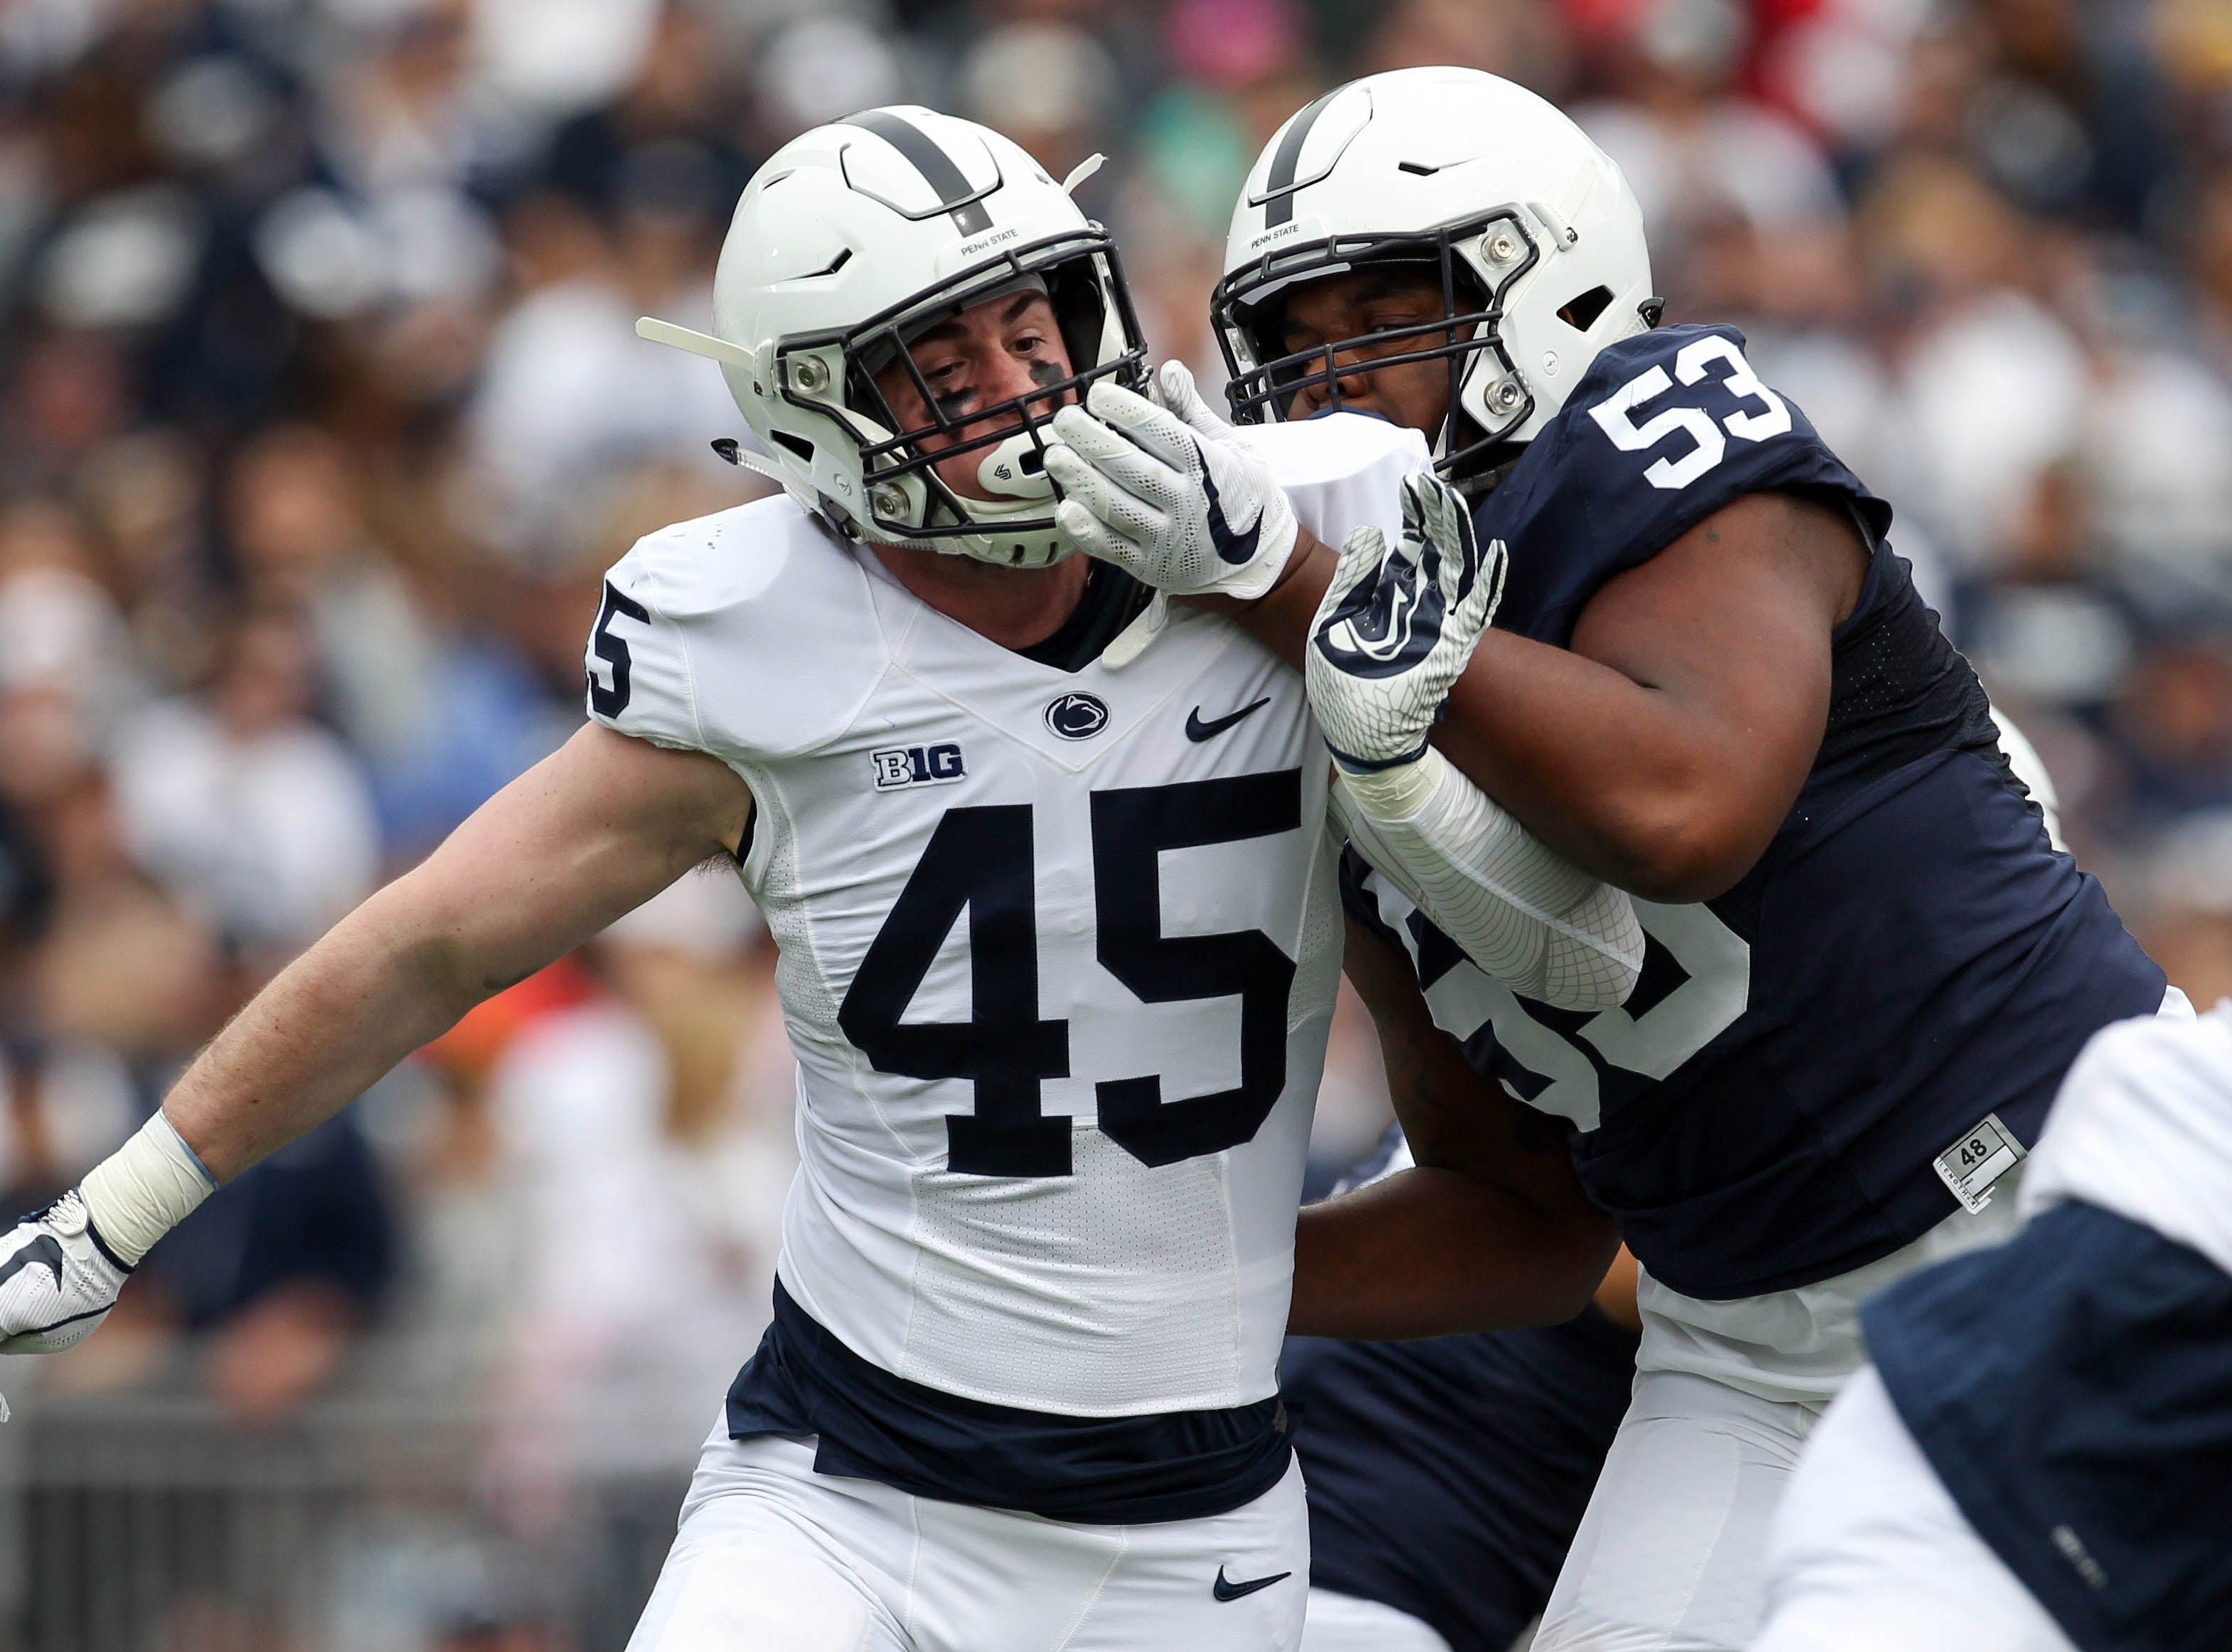 Apr 13, 2019; University Park, PA, USA; Penn State Nittany Lions linebacker Charlie Katshir (45) attempts to break past offensive linesmen Rasheed Walker (53) during the first quarter of the Blue White spring game at Beaver Stadium. The Blue team defeated the White team 24-7. Mandatory Credit: Matthew O'Haren-USA TODAY Sports